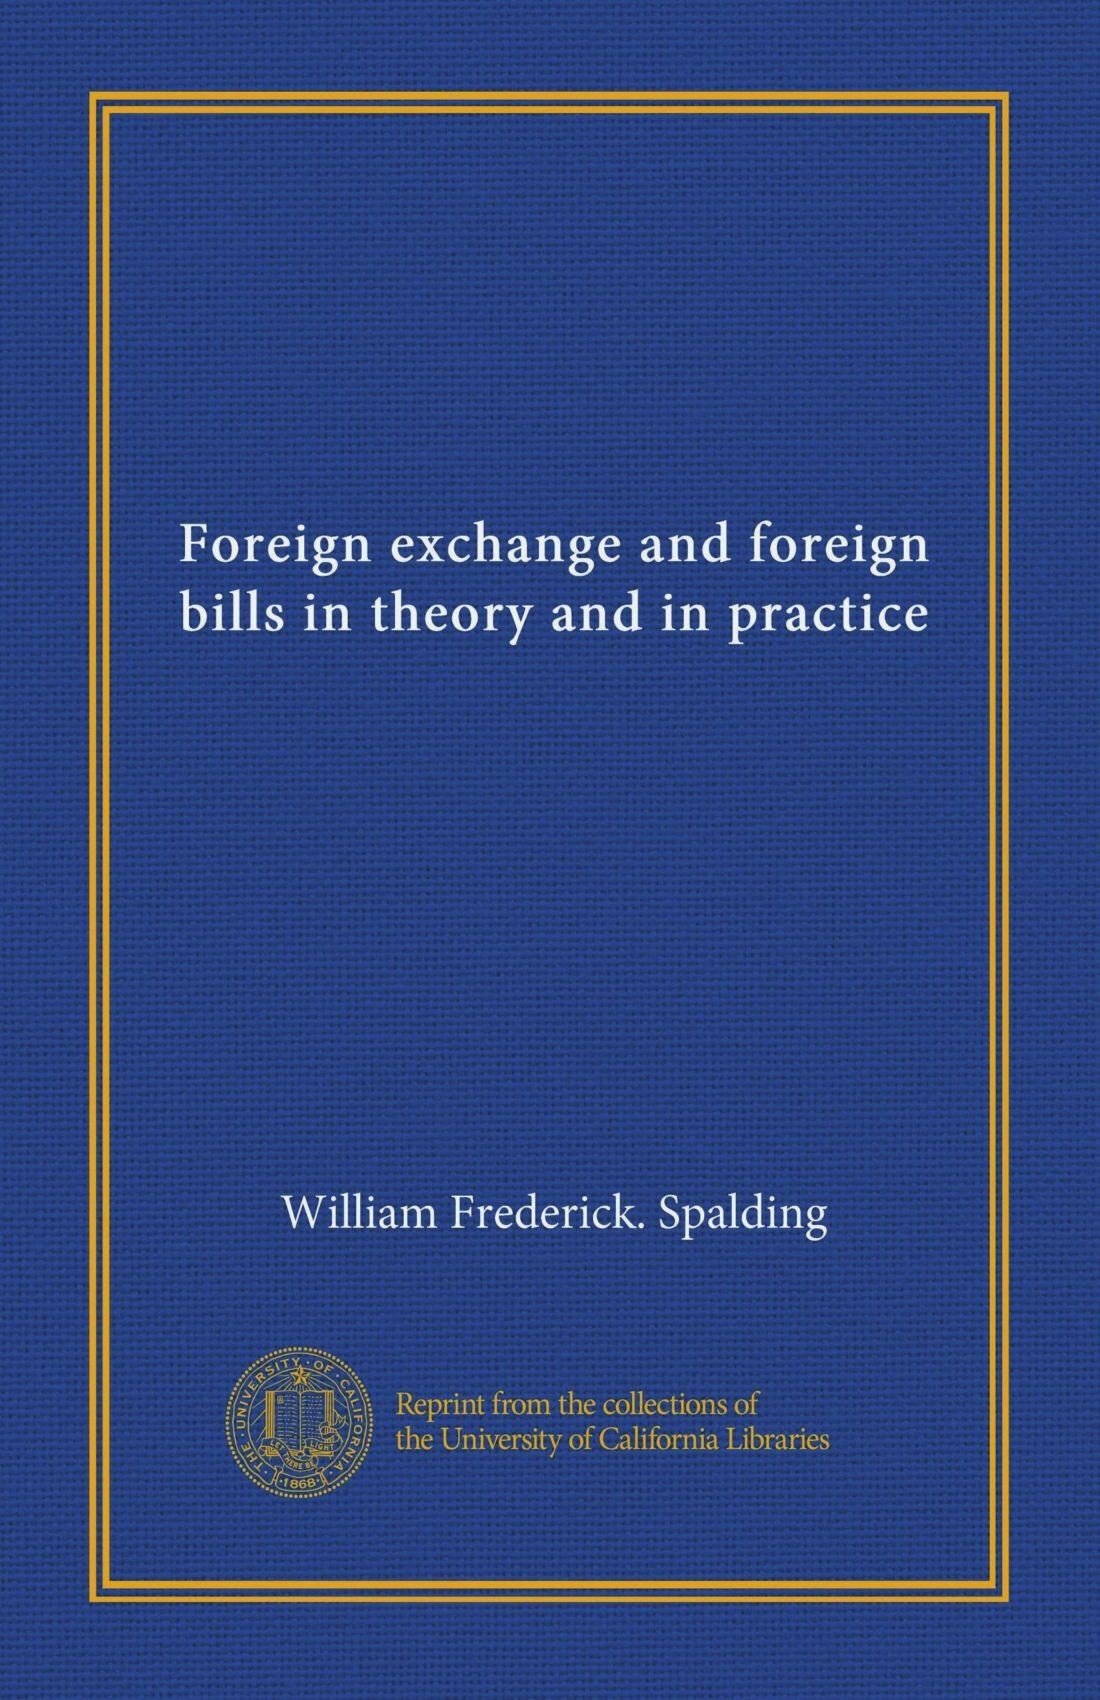 Foreign exchange and foreign bills in theory and in practice PDF